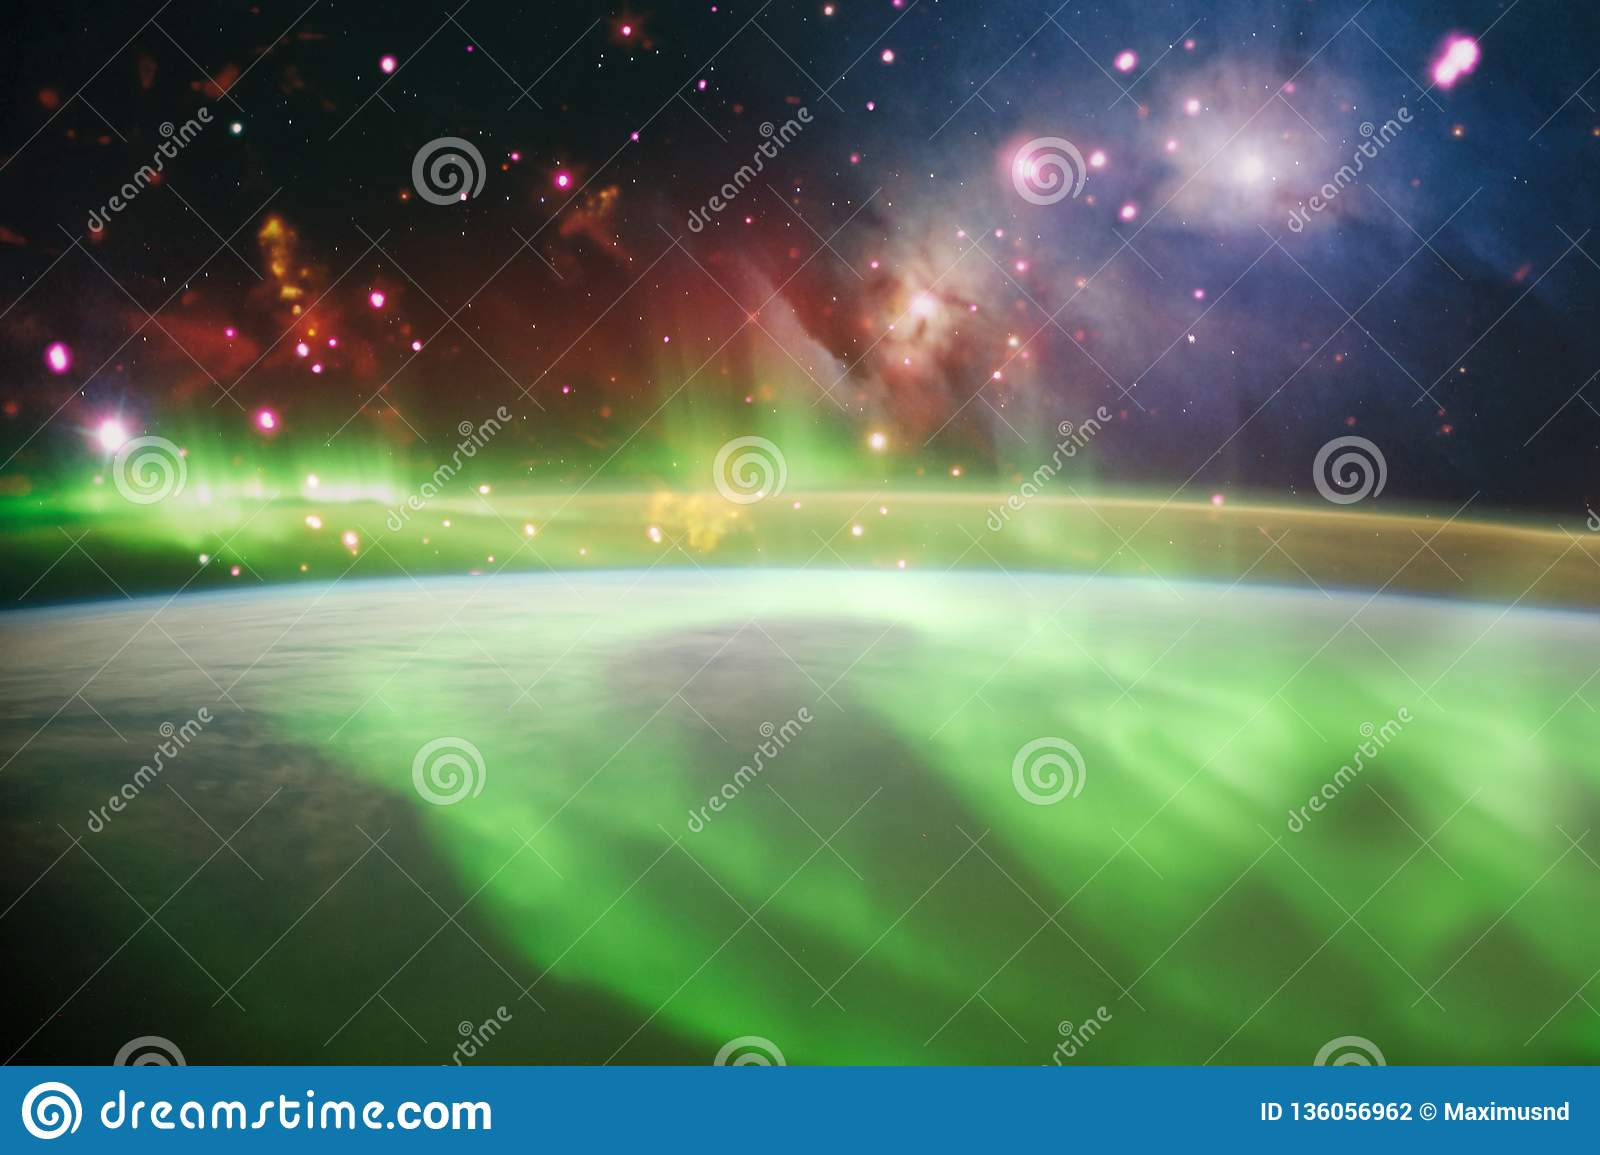 Abstract Bright Colorful Universe Nebula Night Starry Sky In